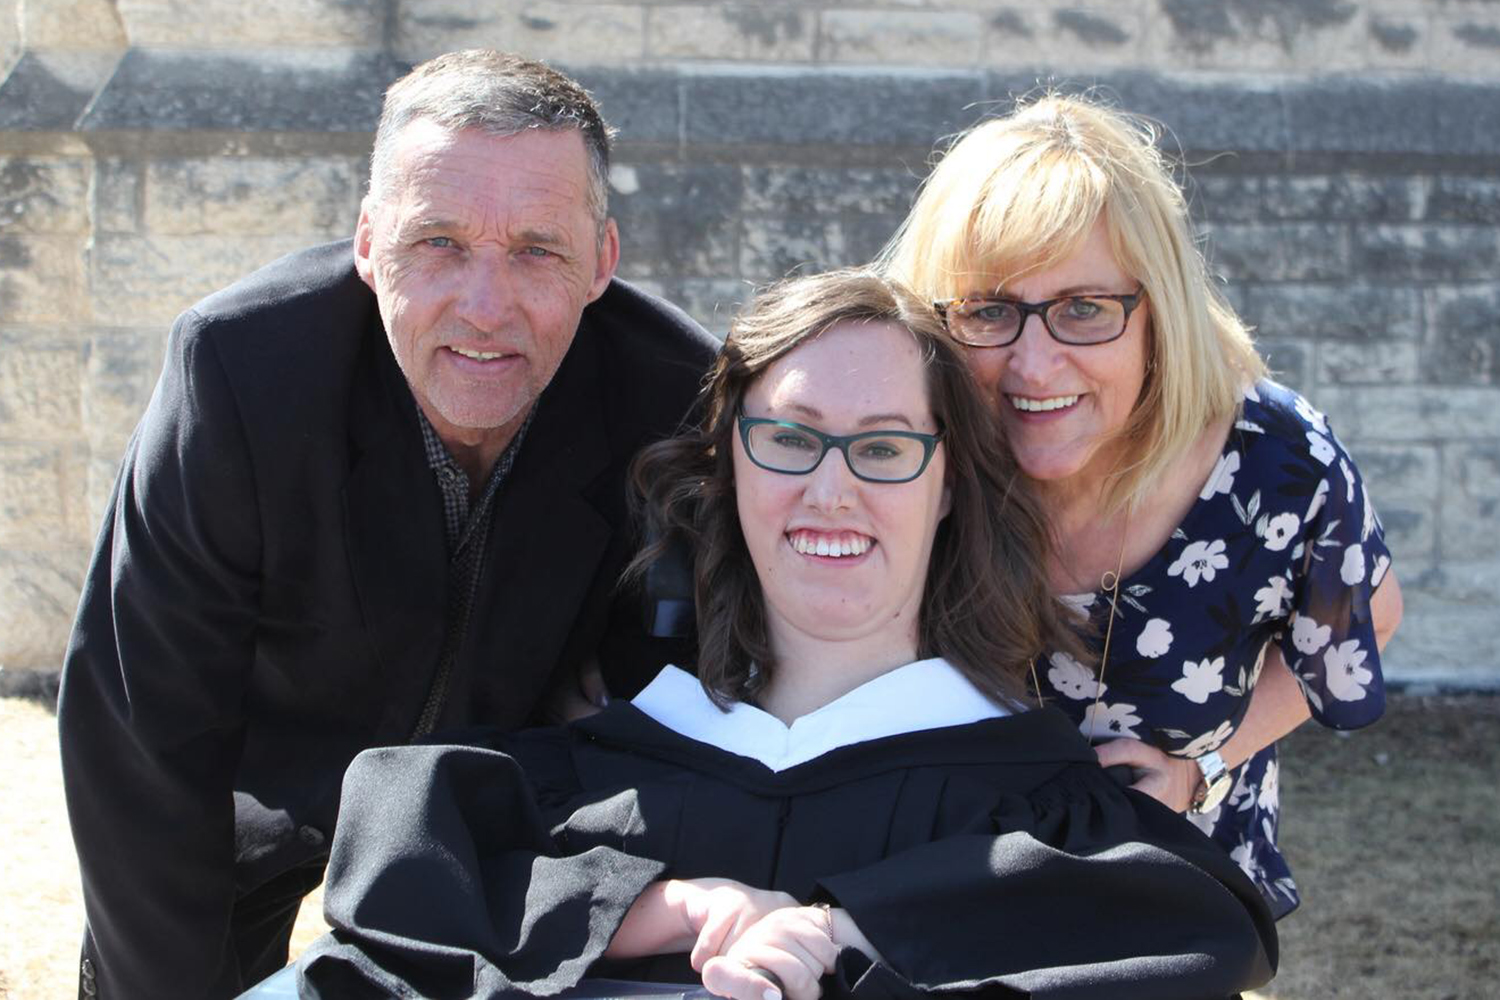 Cristina Waldner in her graduation gown surrounded by her parents on the day of her graduation from CMU.